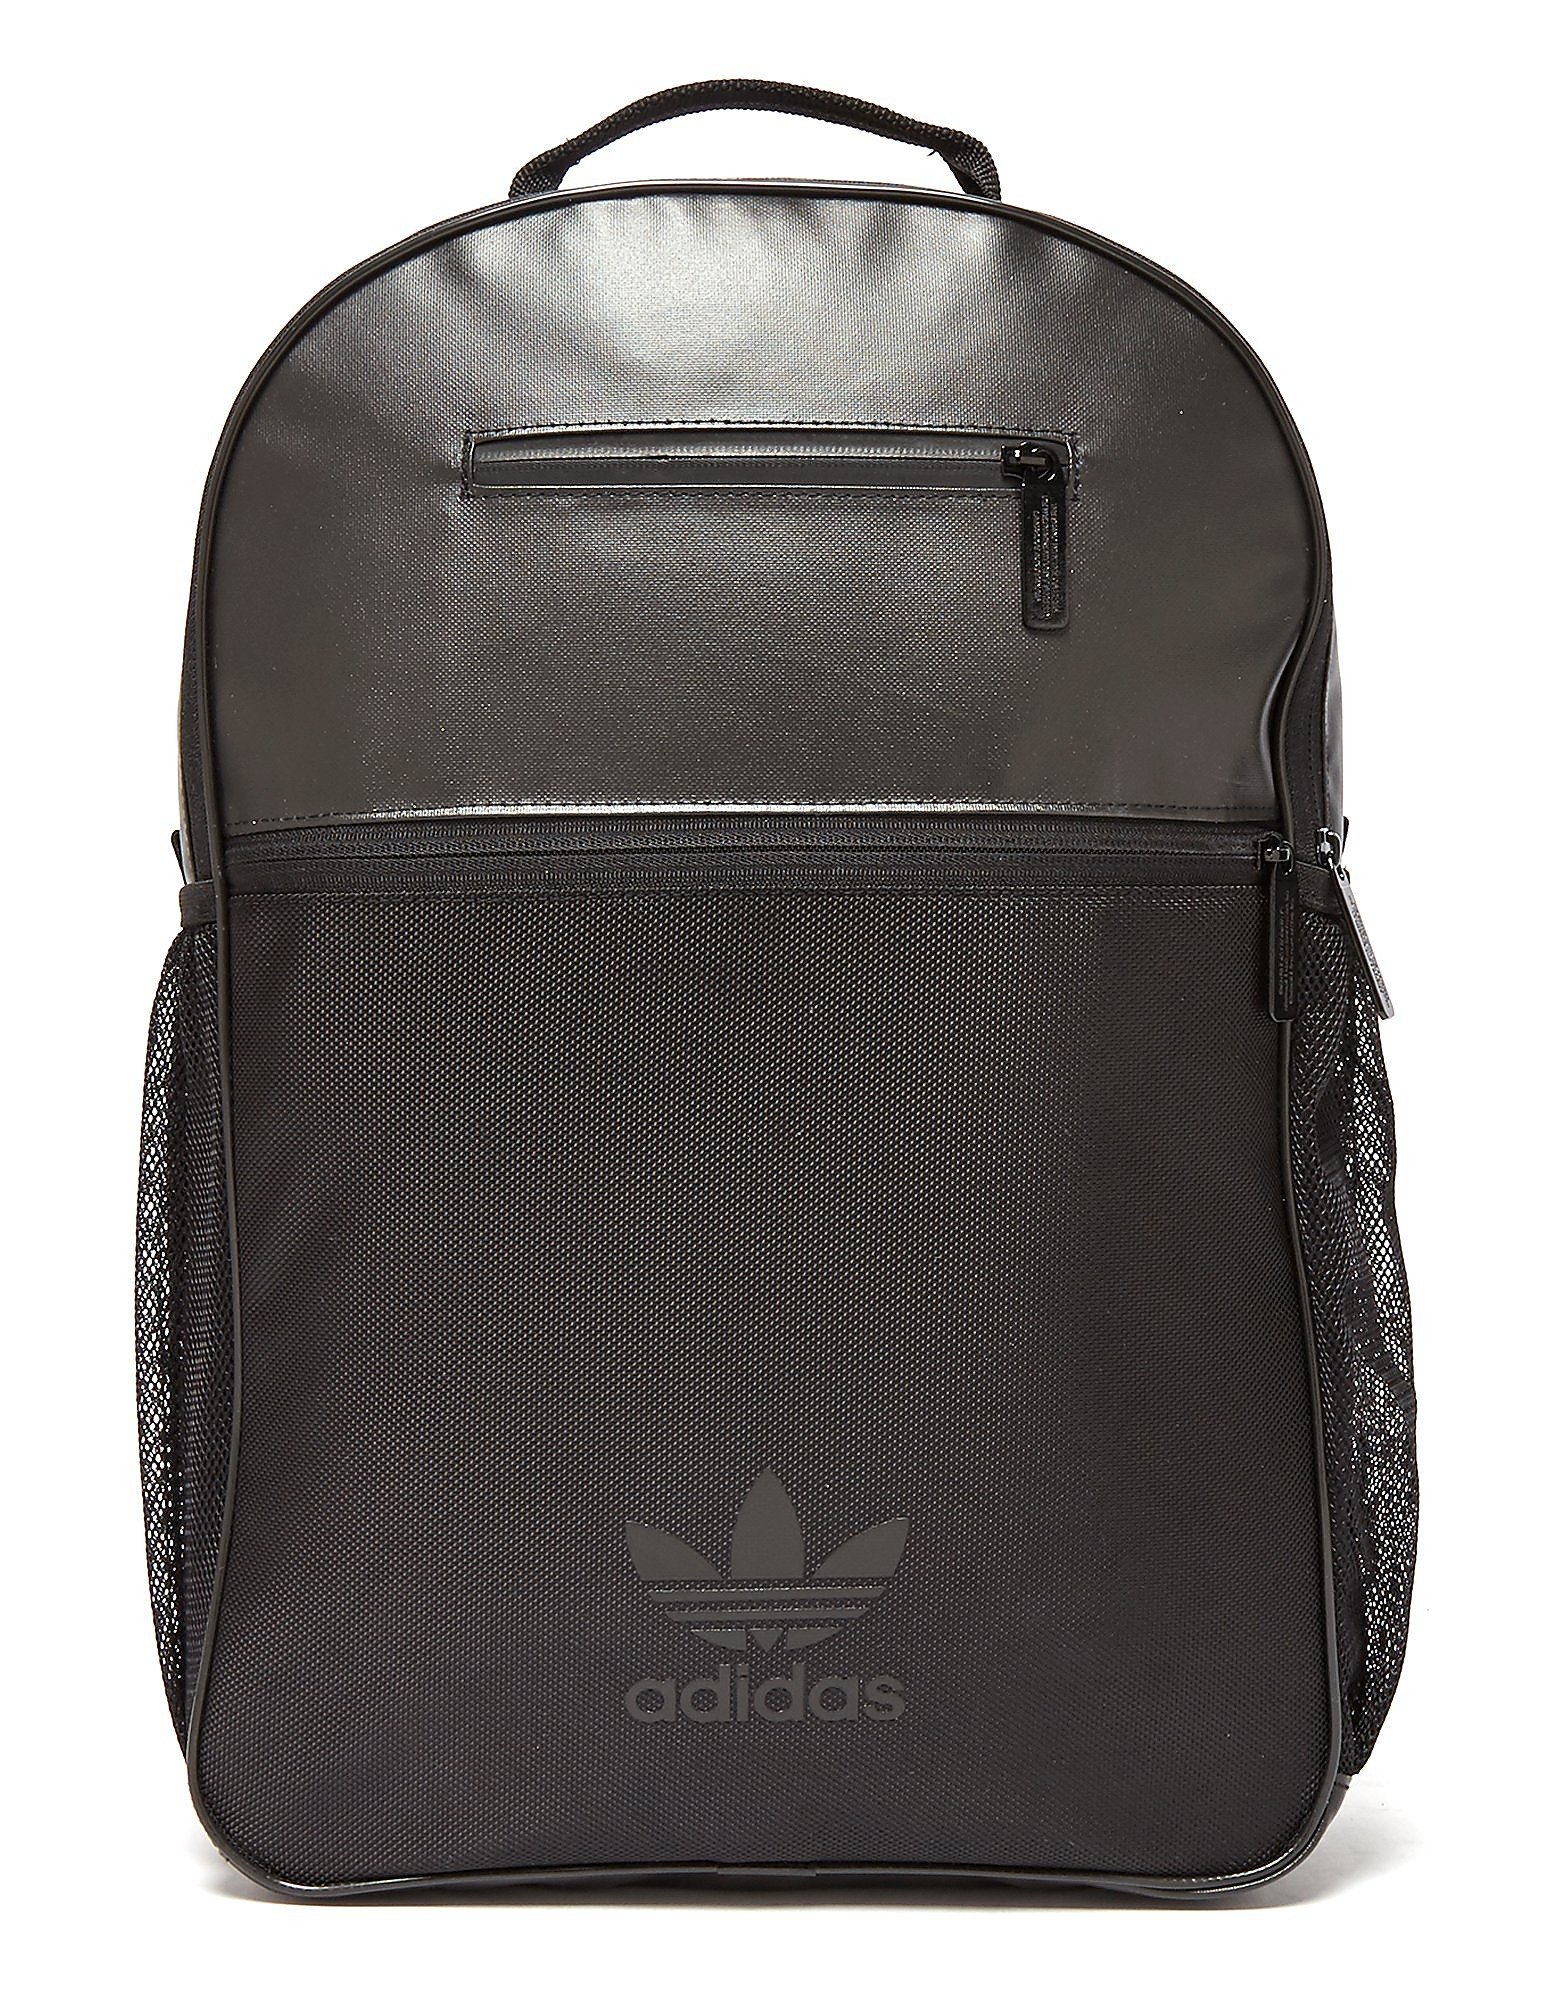 adidas Originals Essential Sport Mesh Backpack